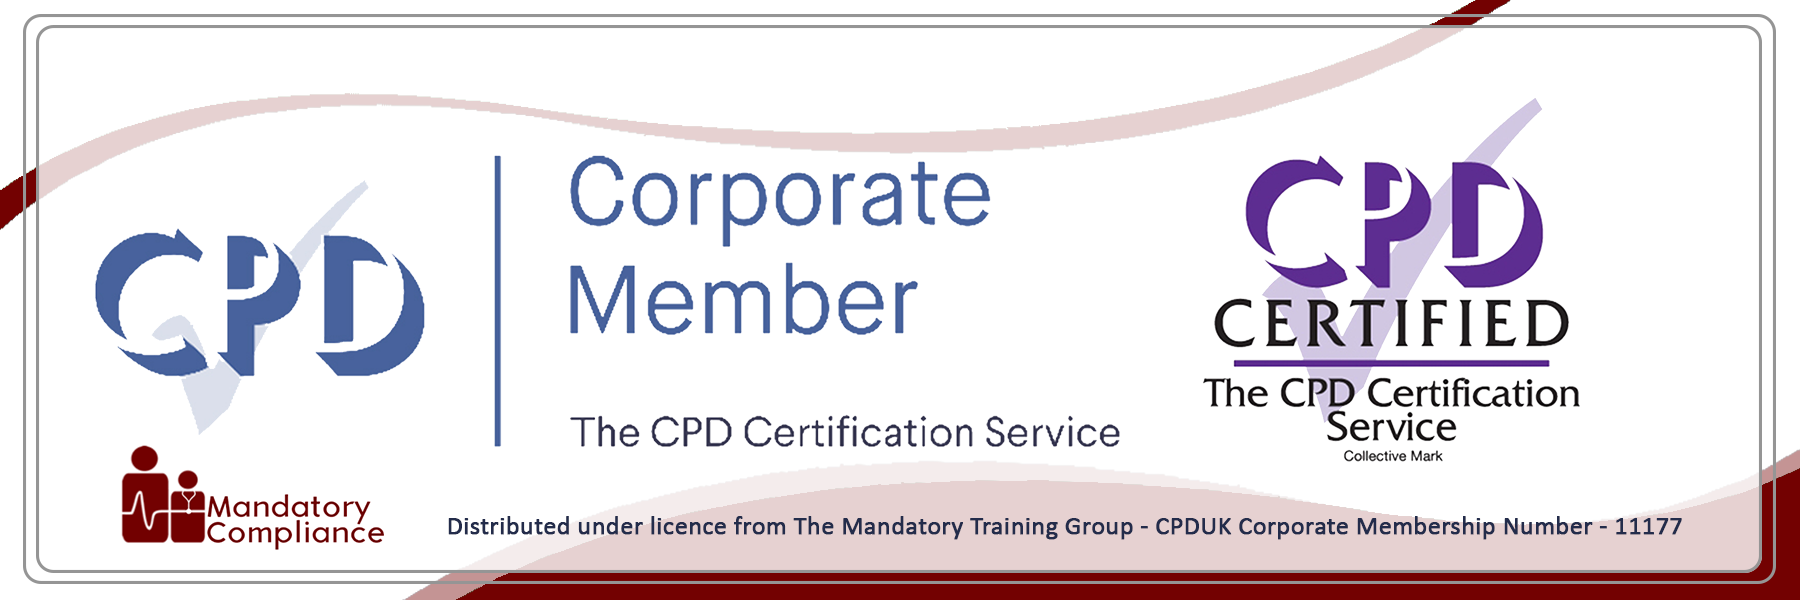 Coaching Salespeople - Online Training Course - CPDUK Accredited - Mandatory Compliance UK -